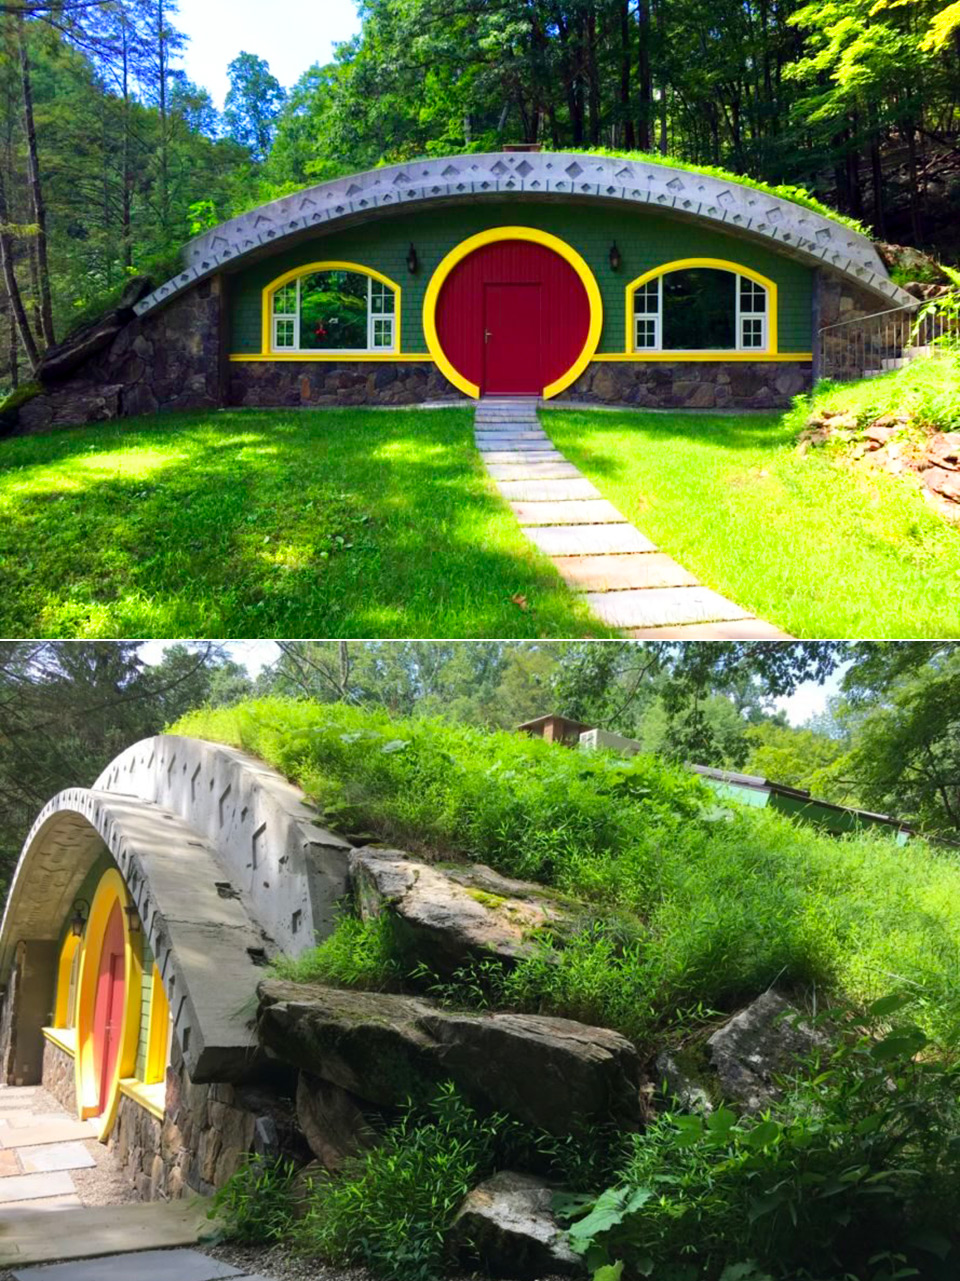 Real Hobbit House Lord of the Rings